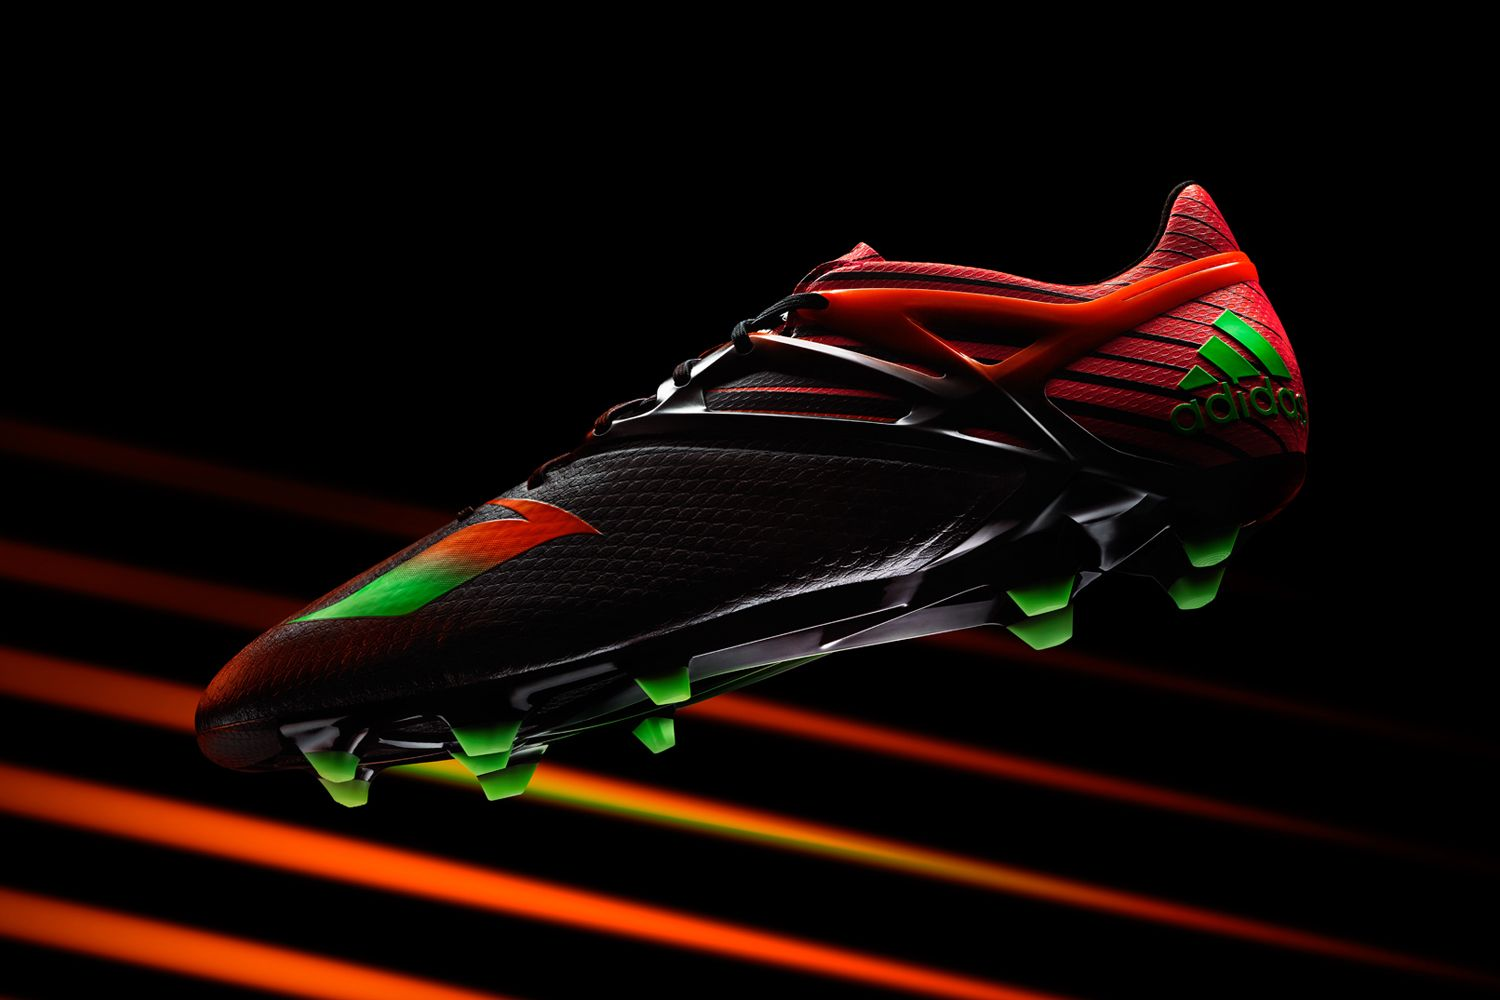 brazo explorar Experto  Lionel Messi to Return to Action in New Limited Edition Boots | Lionel messi,  Messi, Messi shoes